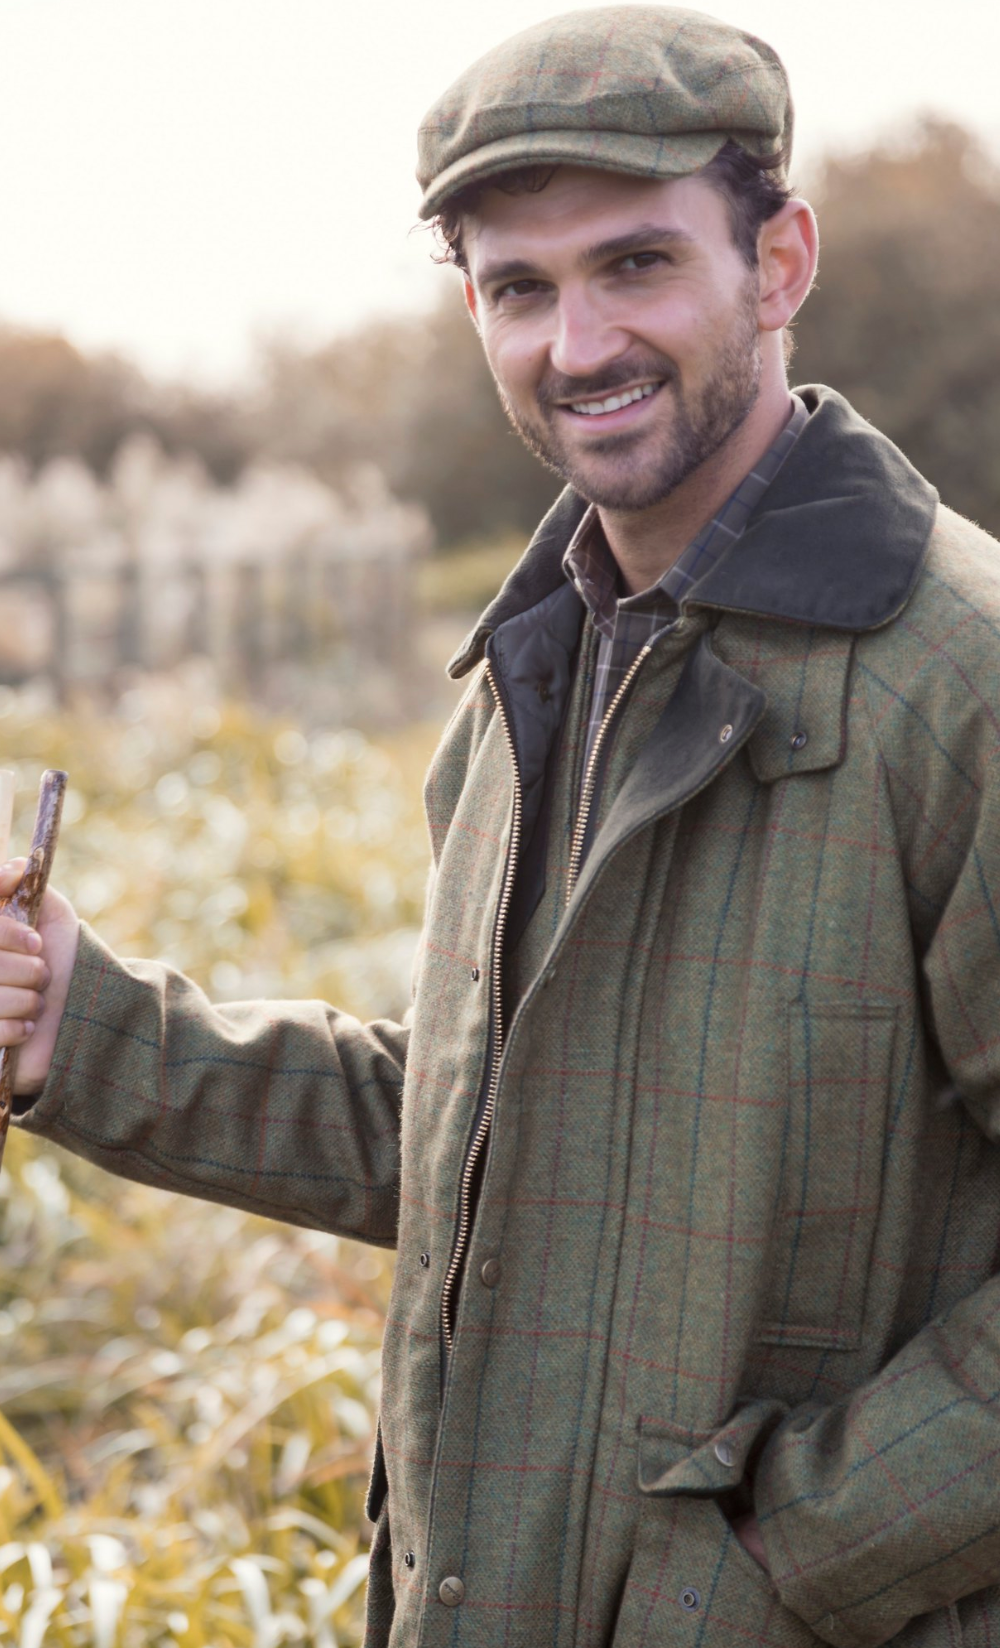 Man In Full Matching Tweeds Smiling On The Shoot Day Country Clothing Uk Country Outfits Country Wear